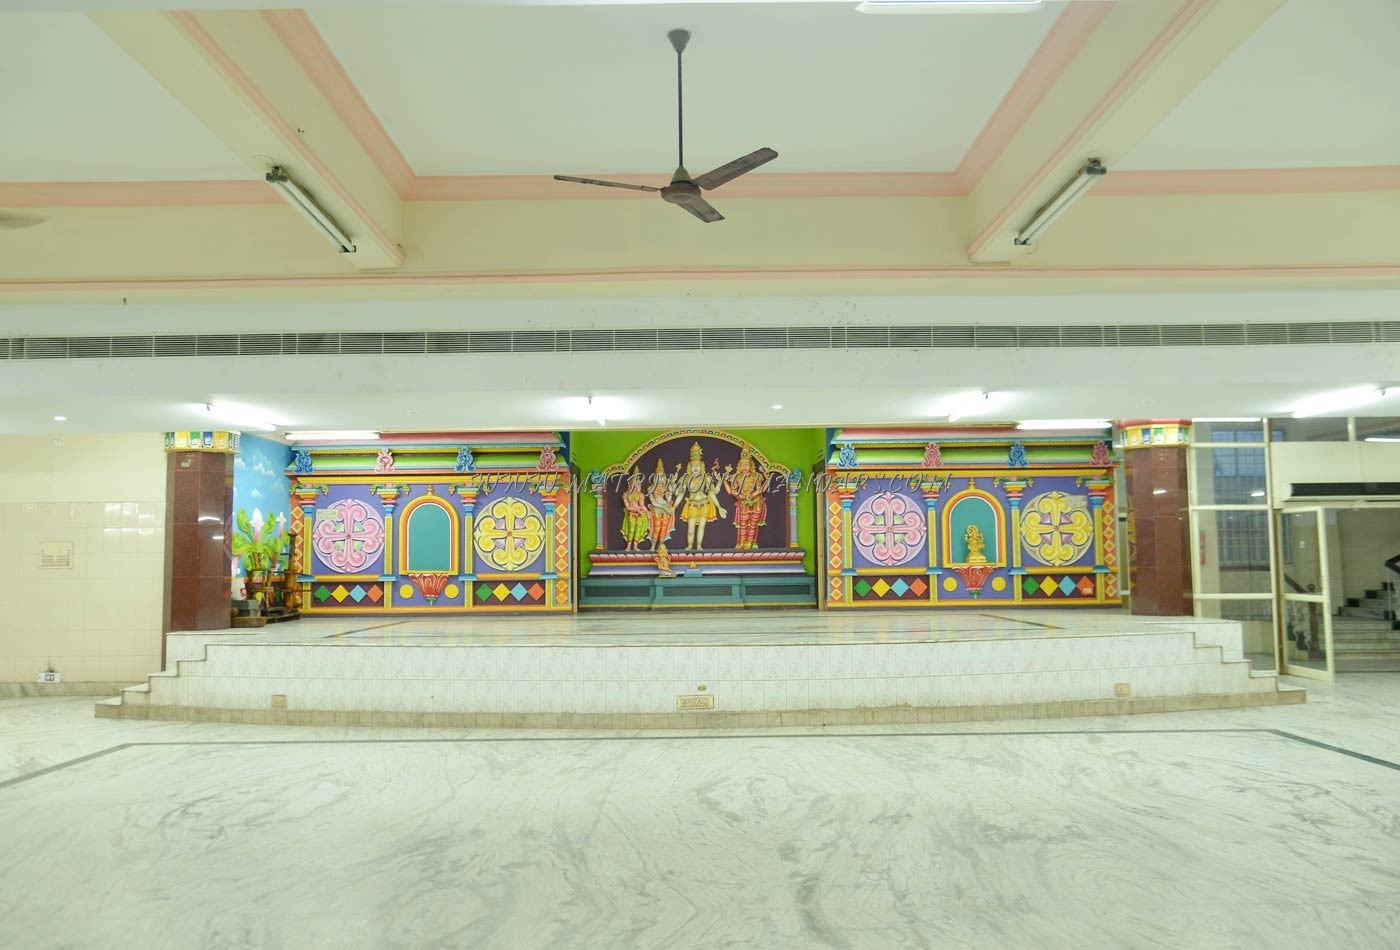 Find the availability of the Varathambal Chokalingam Kalyana Mandapam  (A/C) in Madipakkam, Chennai and avail special offers